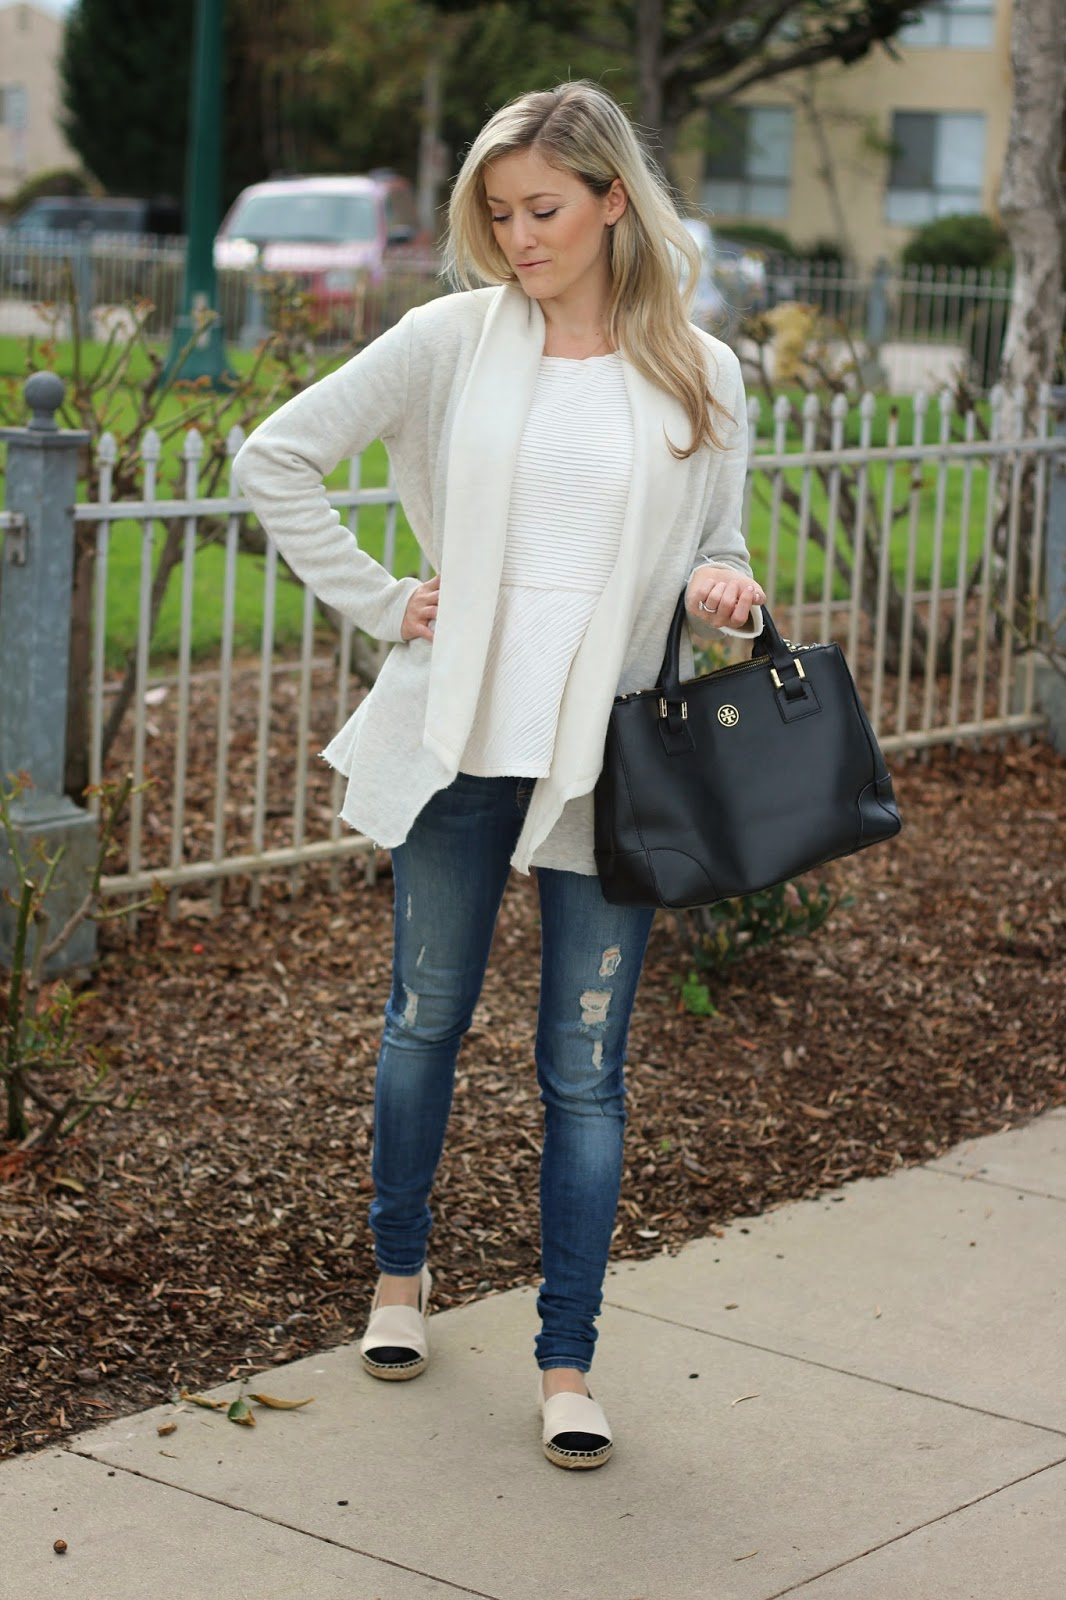 Tory Burch Espadrilles, Draped Cardigan, Neutral Outfit